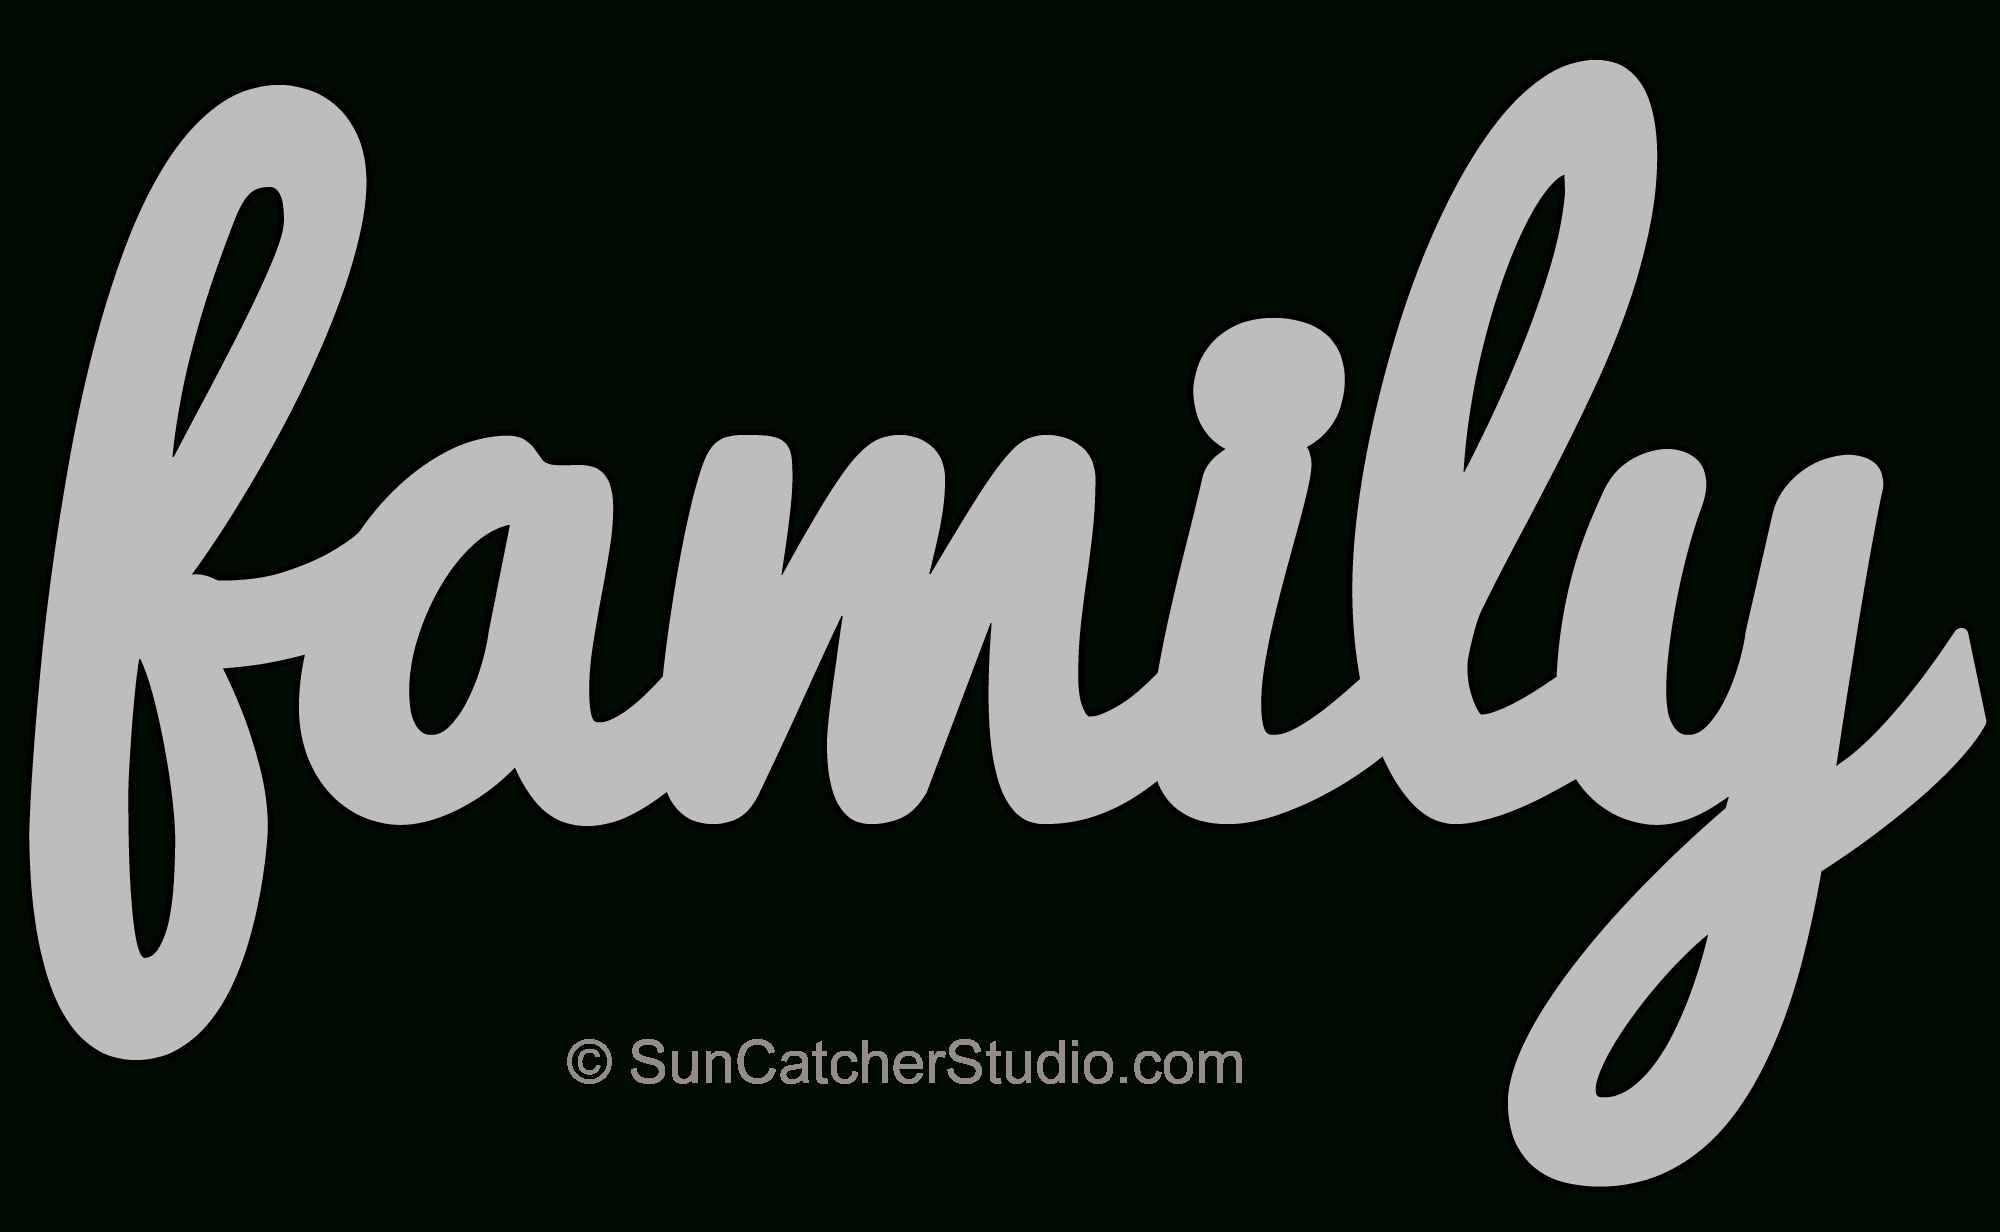 Family - Pattern, Template, Stencil, Printable Word Art Design - Free Printable Stencil Patterns